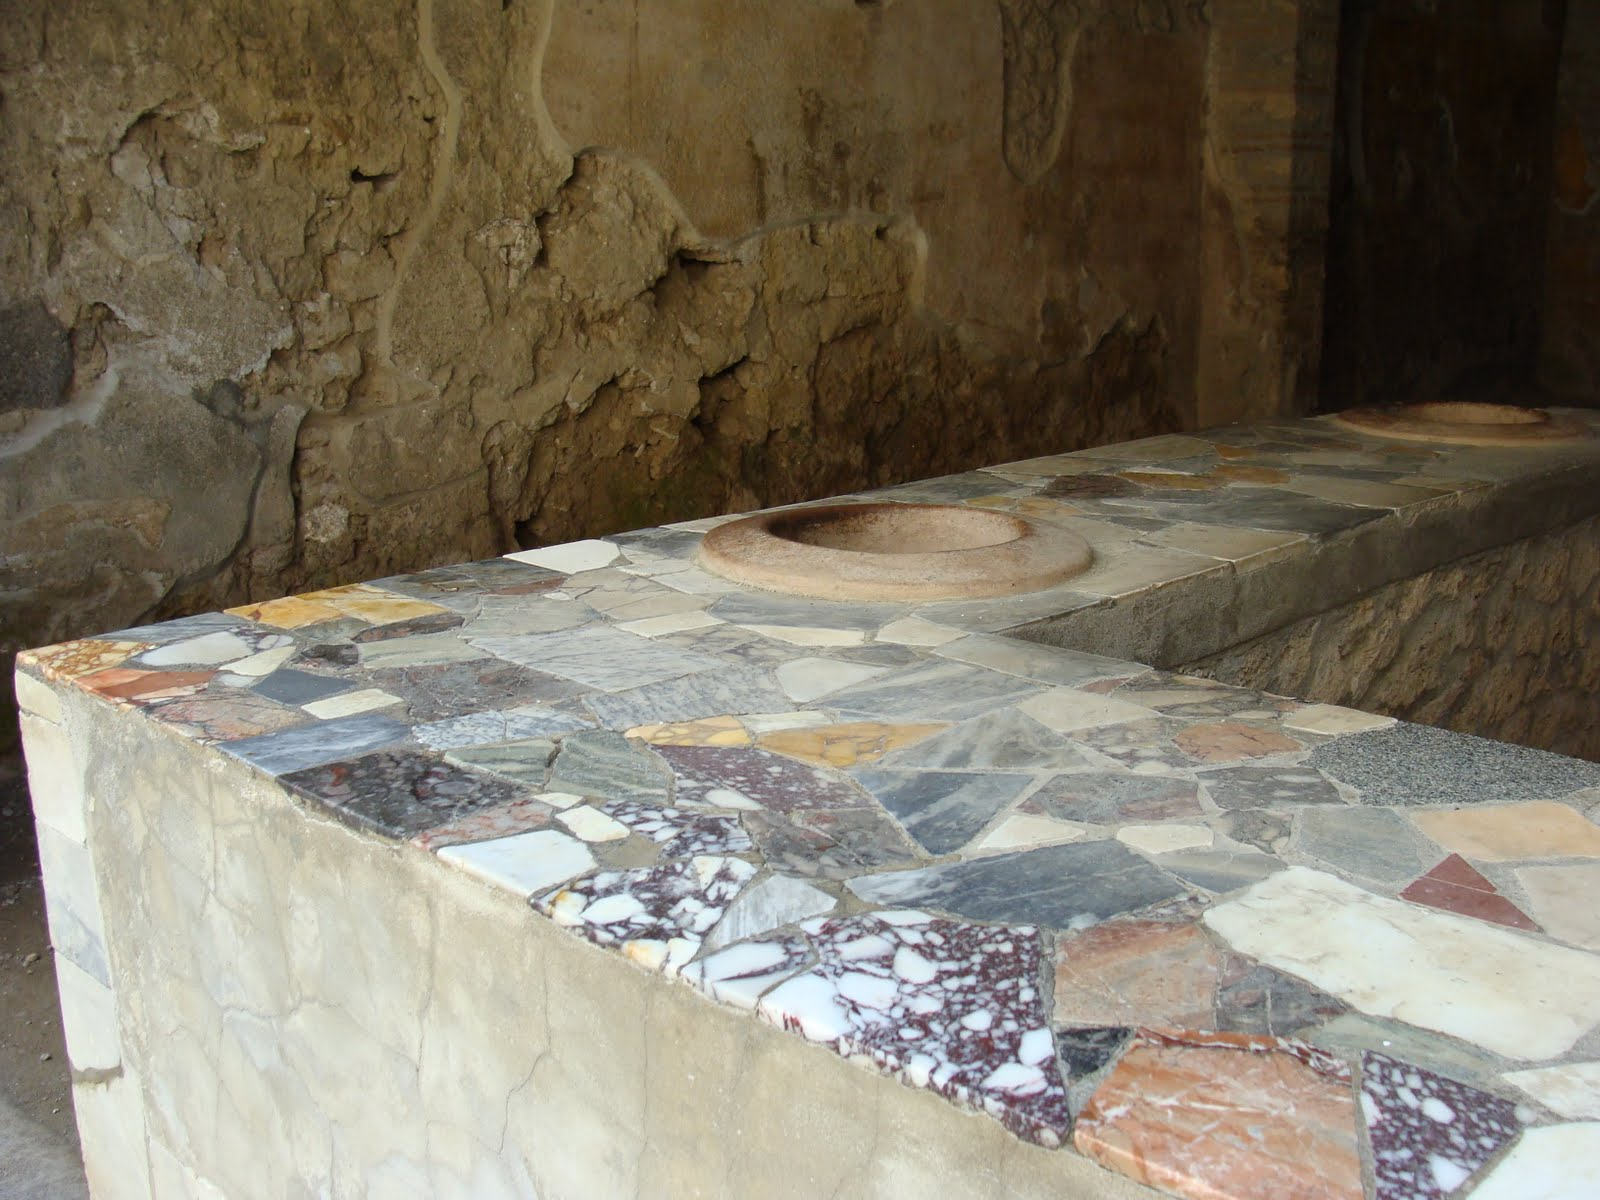 take a look at the bar below two thousand years later people are still making bars out of scraps of marble in the same way